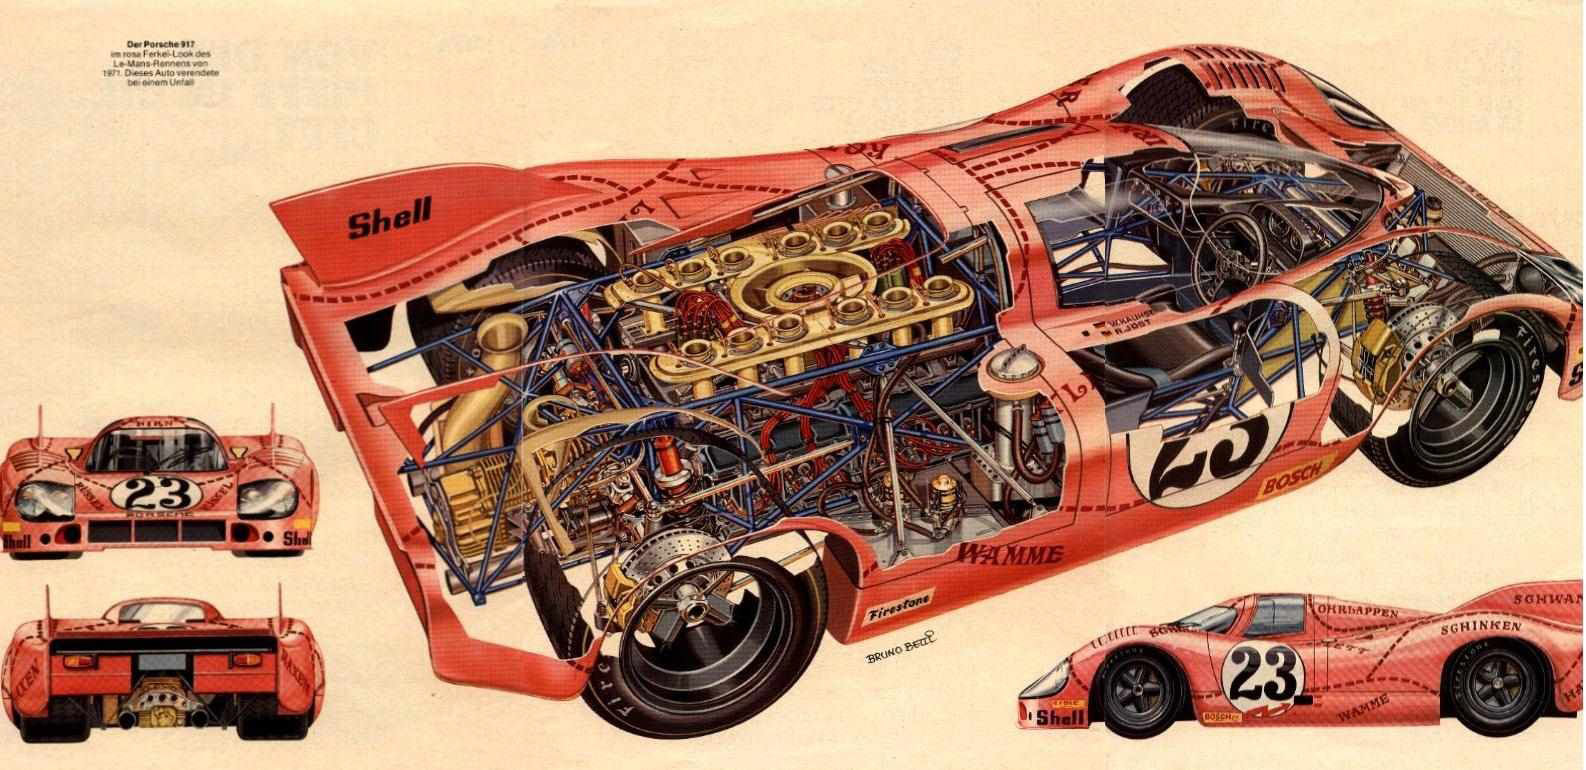 Porsche 917 Racing car cutaway drawing